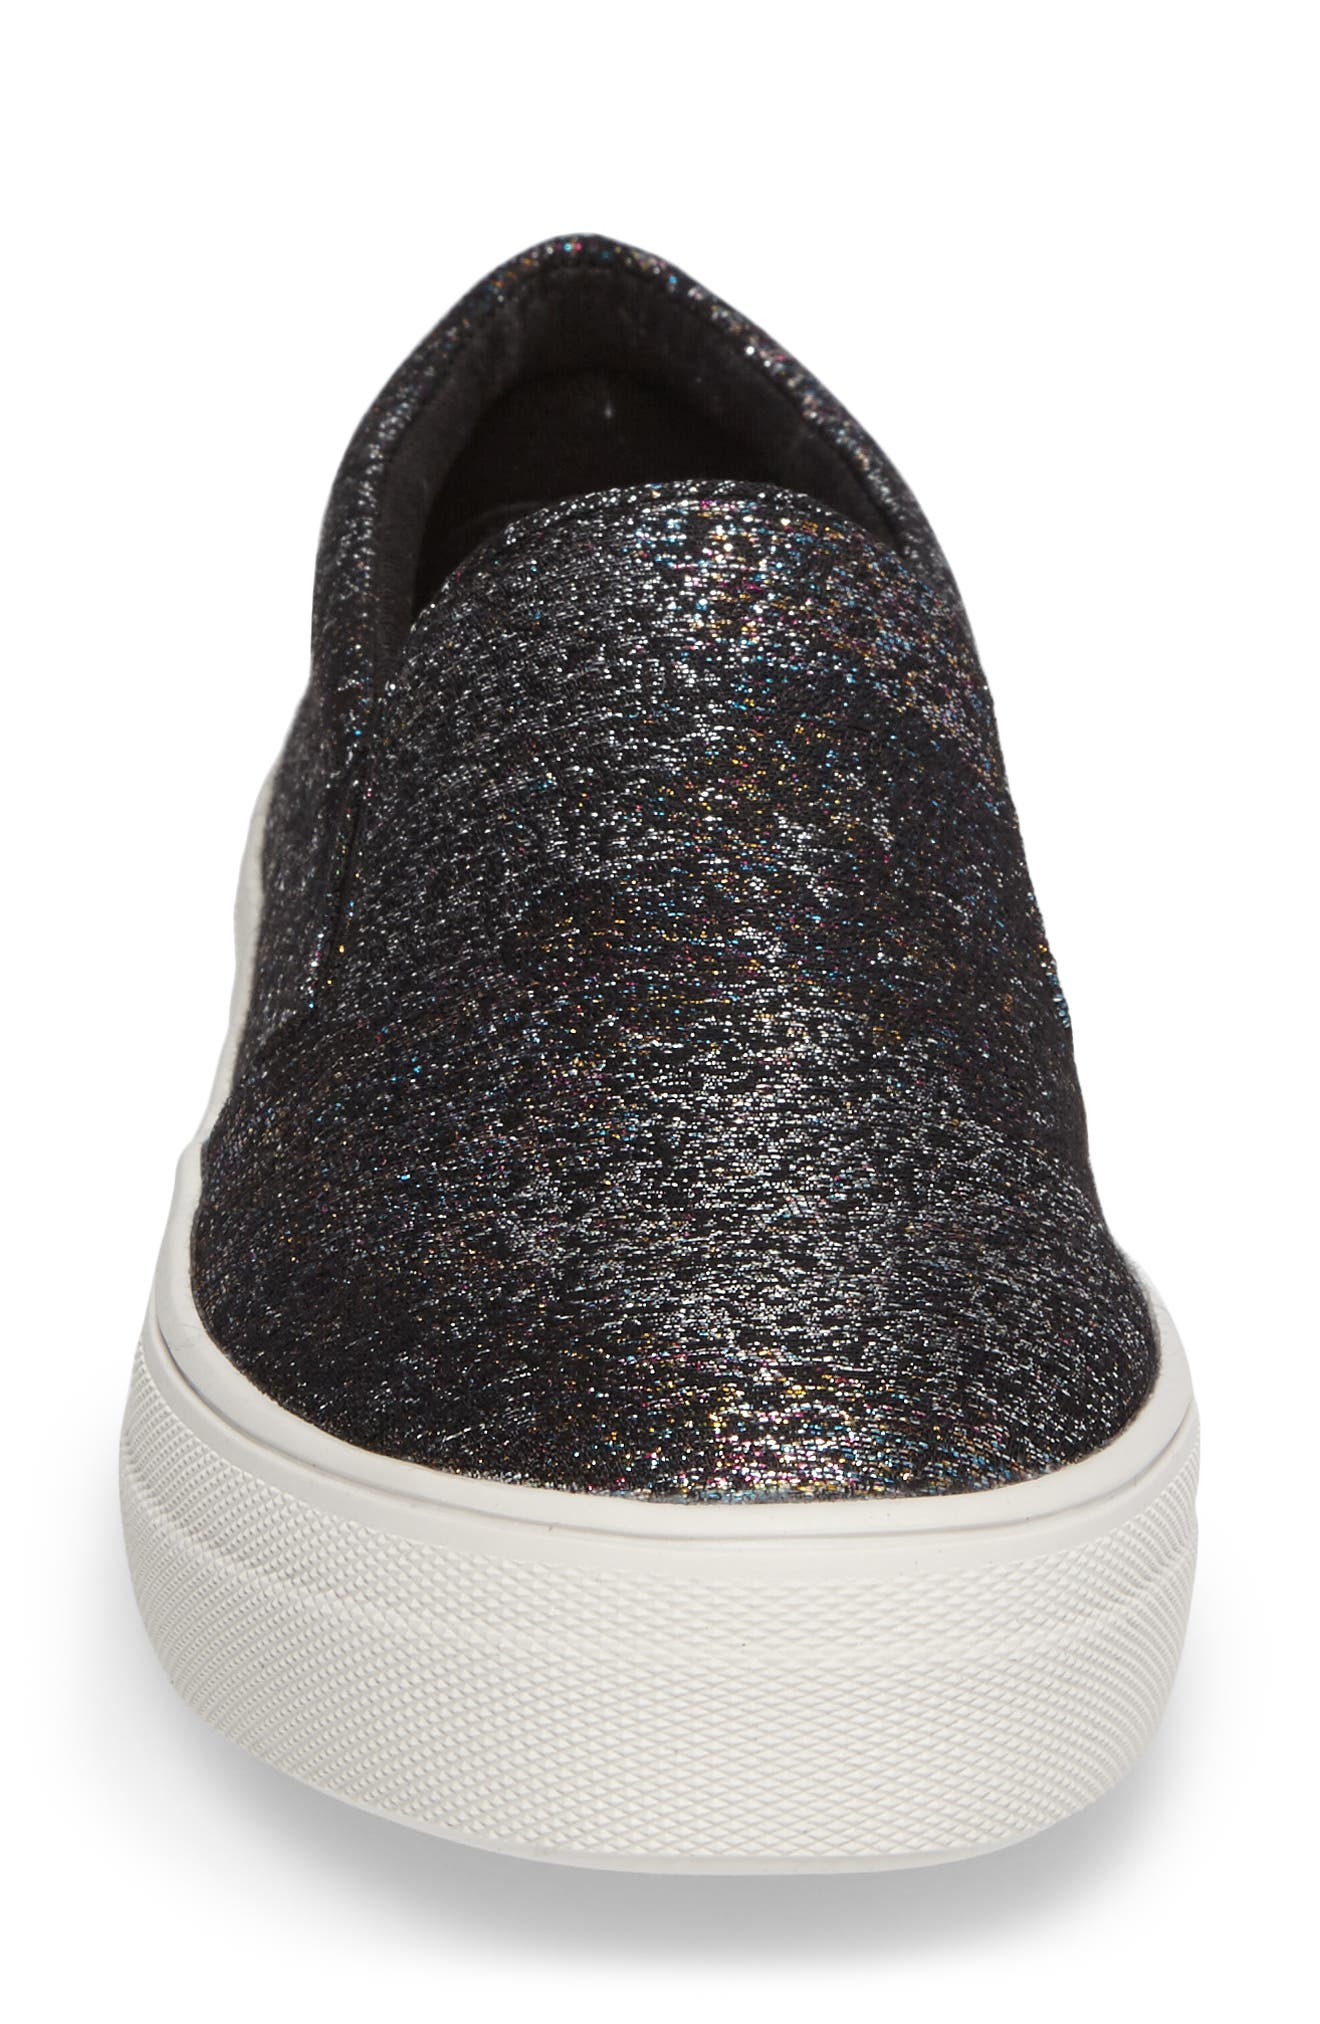 Alternate Image 4  - Steve Madden Gills Platform Slip-On Sneaker (Women)